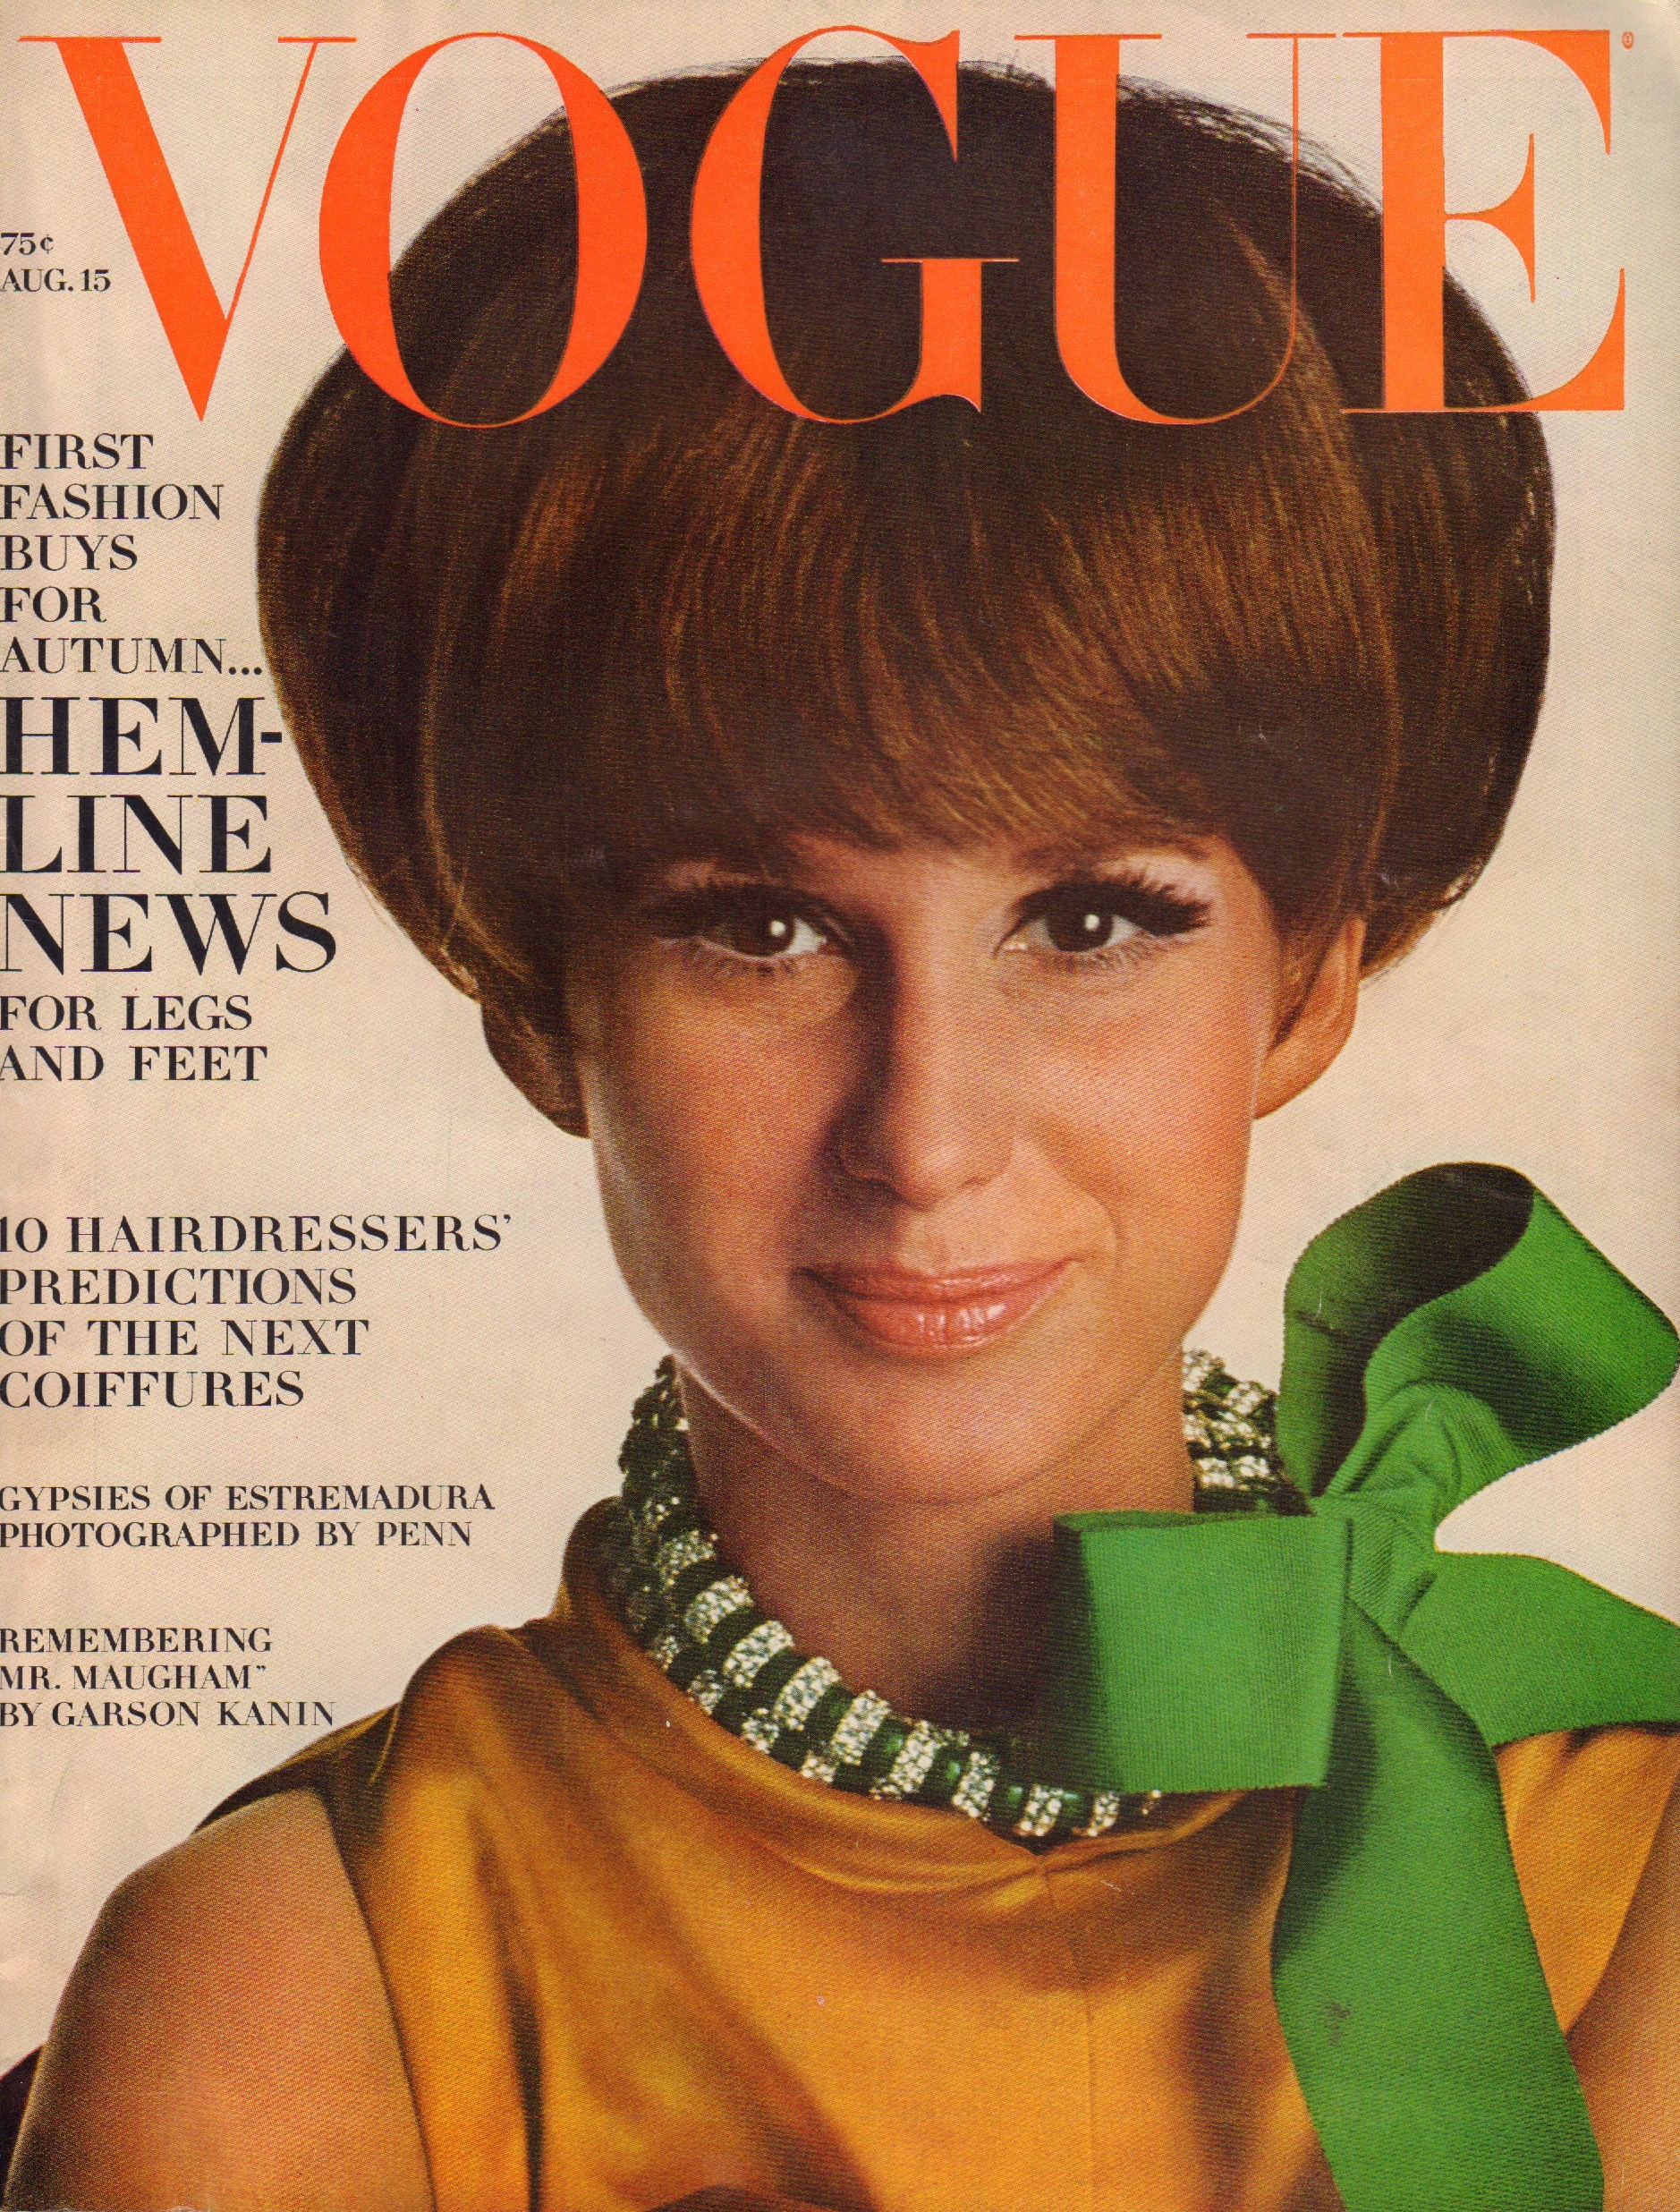 Image for Vogue August 15, 1966